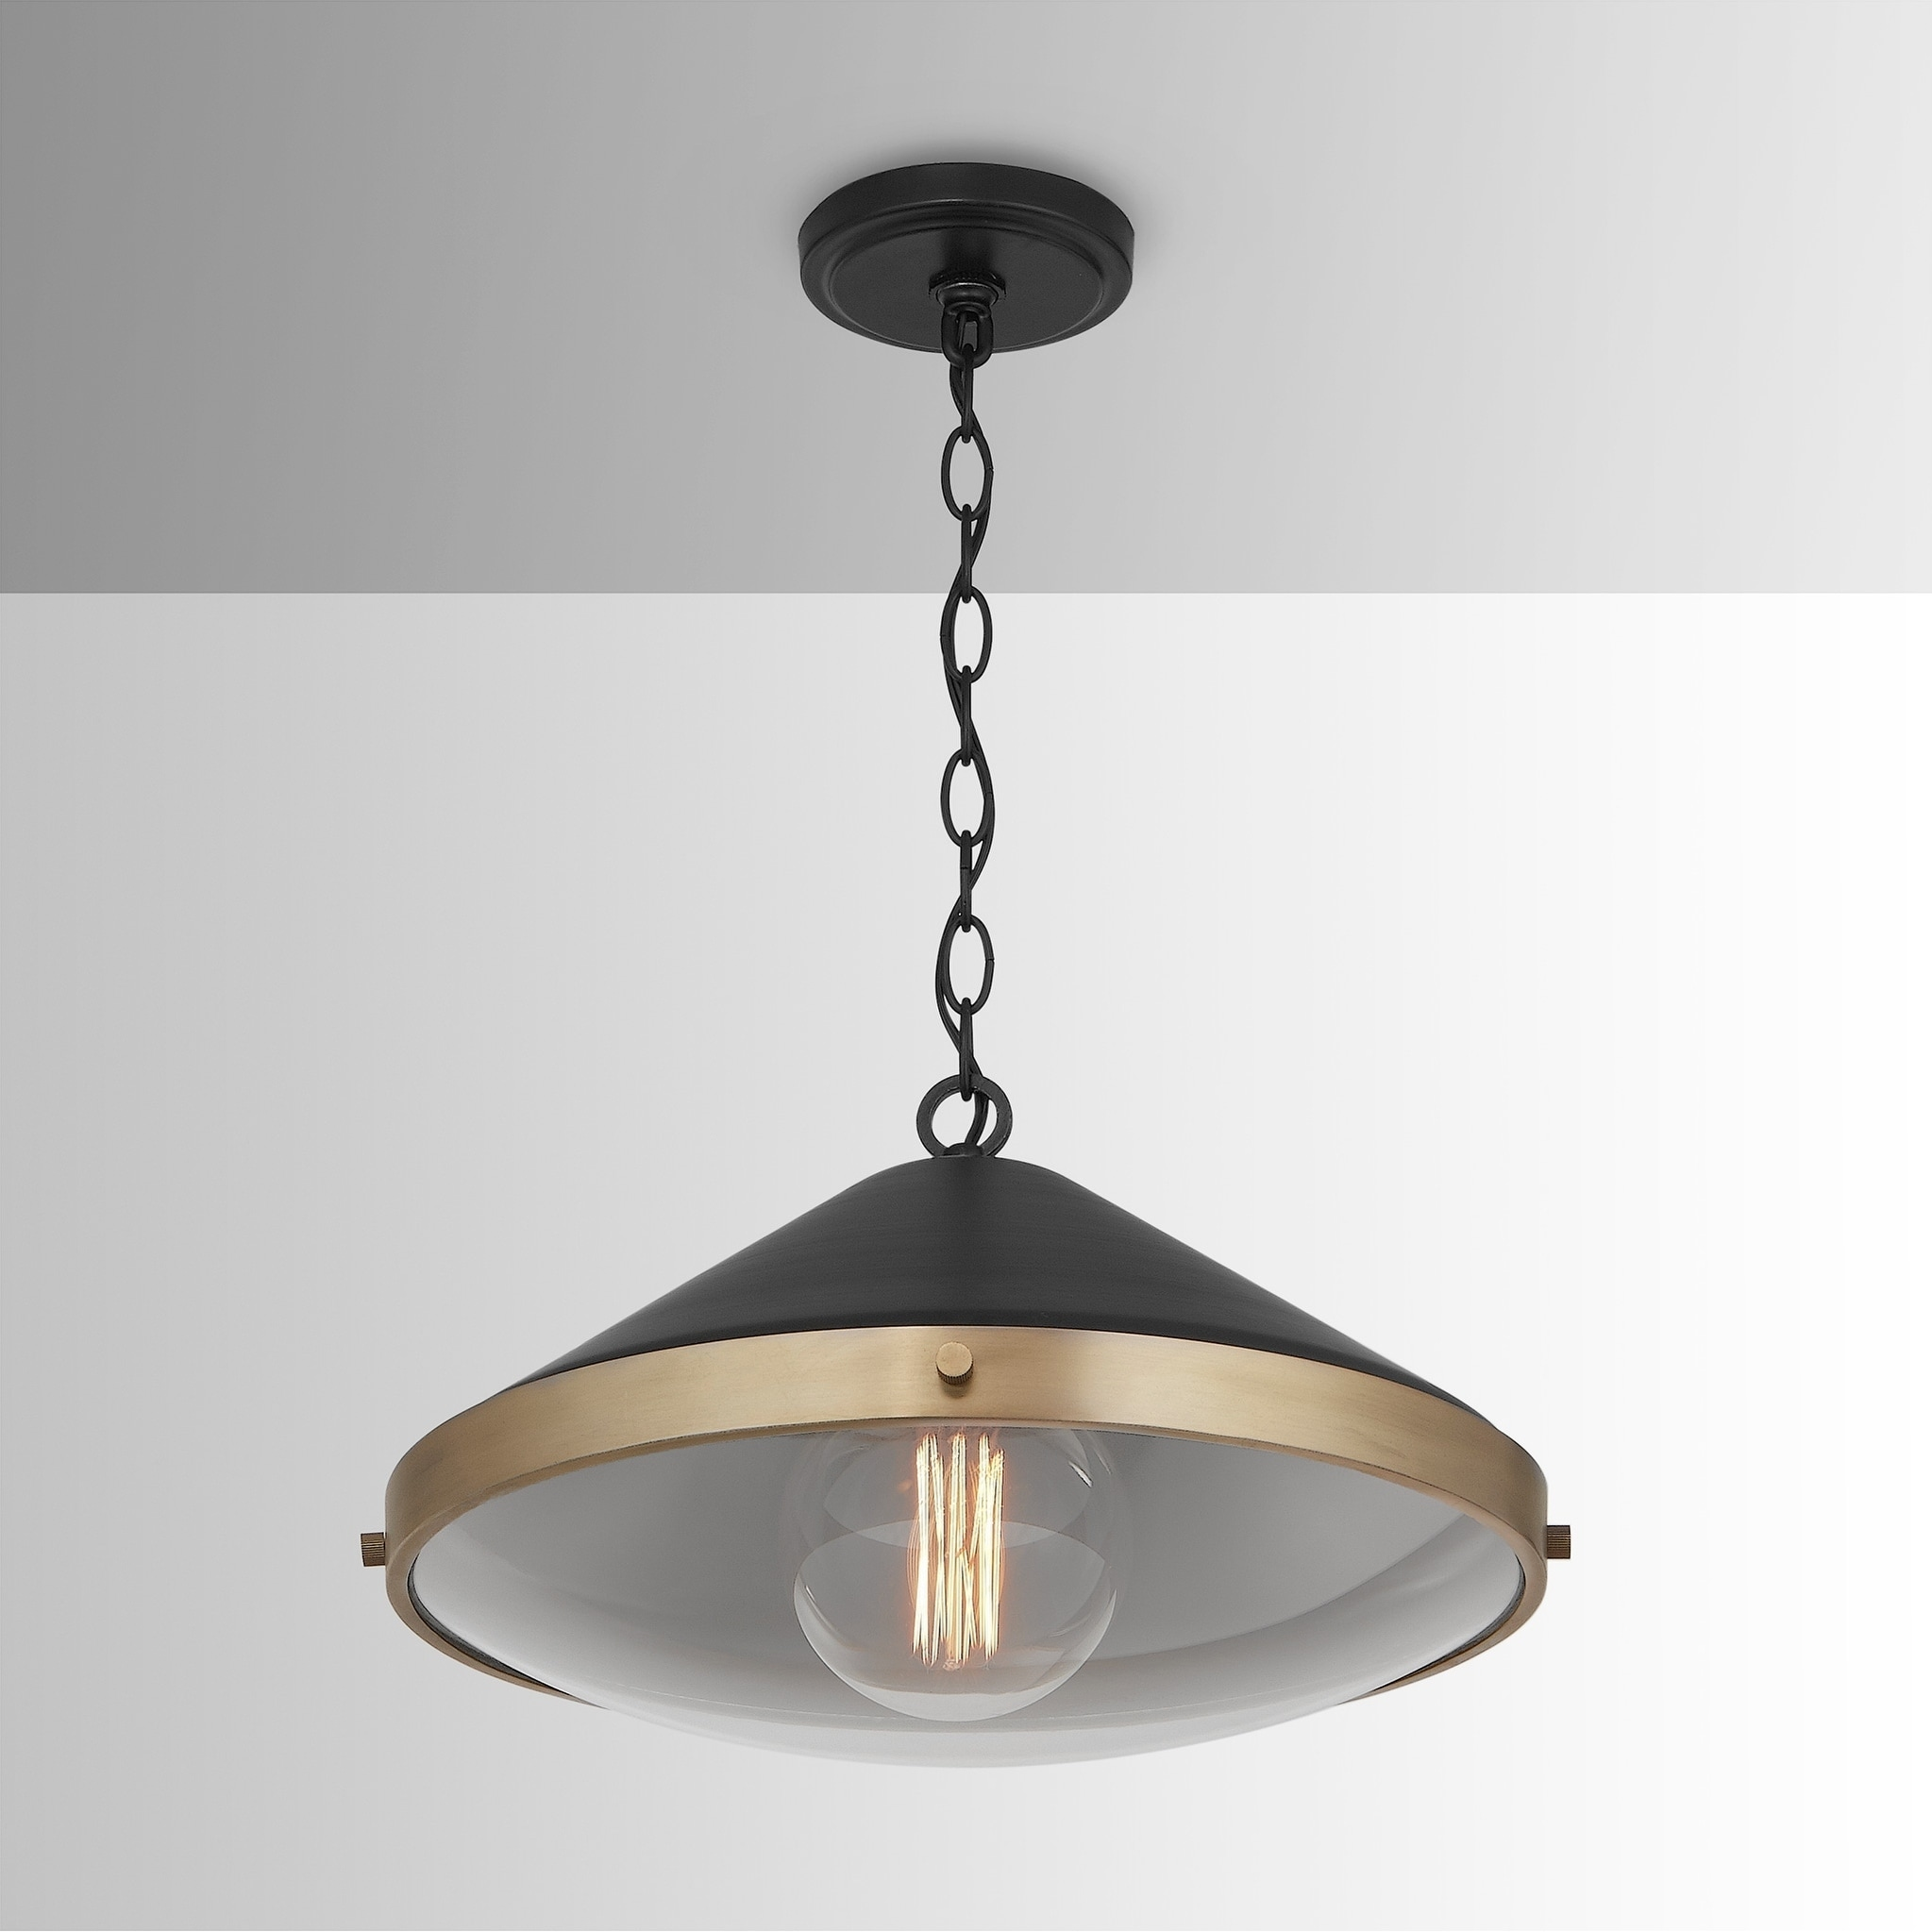 Strick Bolton Rexha 1 Light Aged Brass Black Pendant In 2020